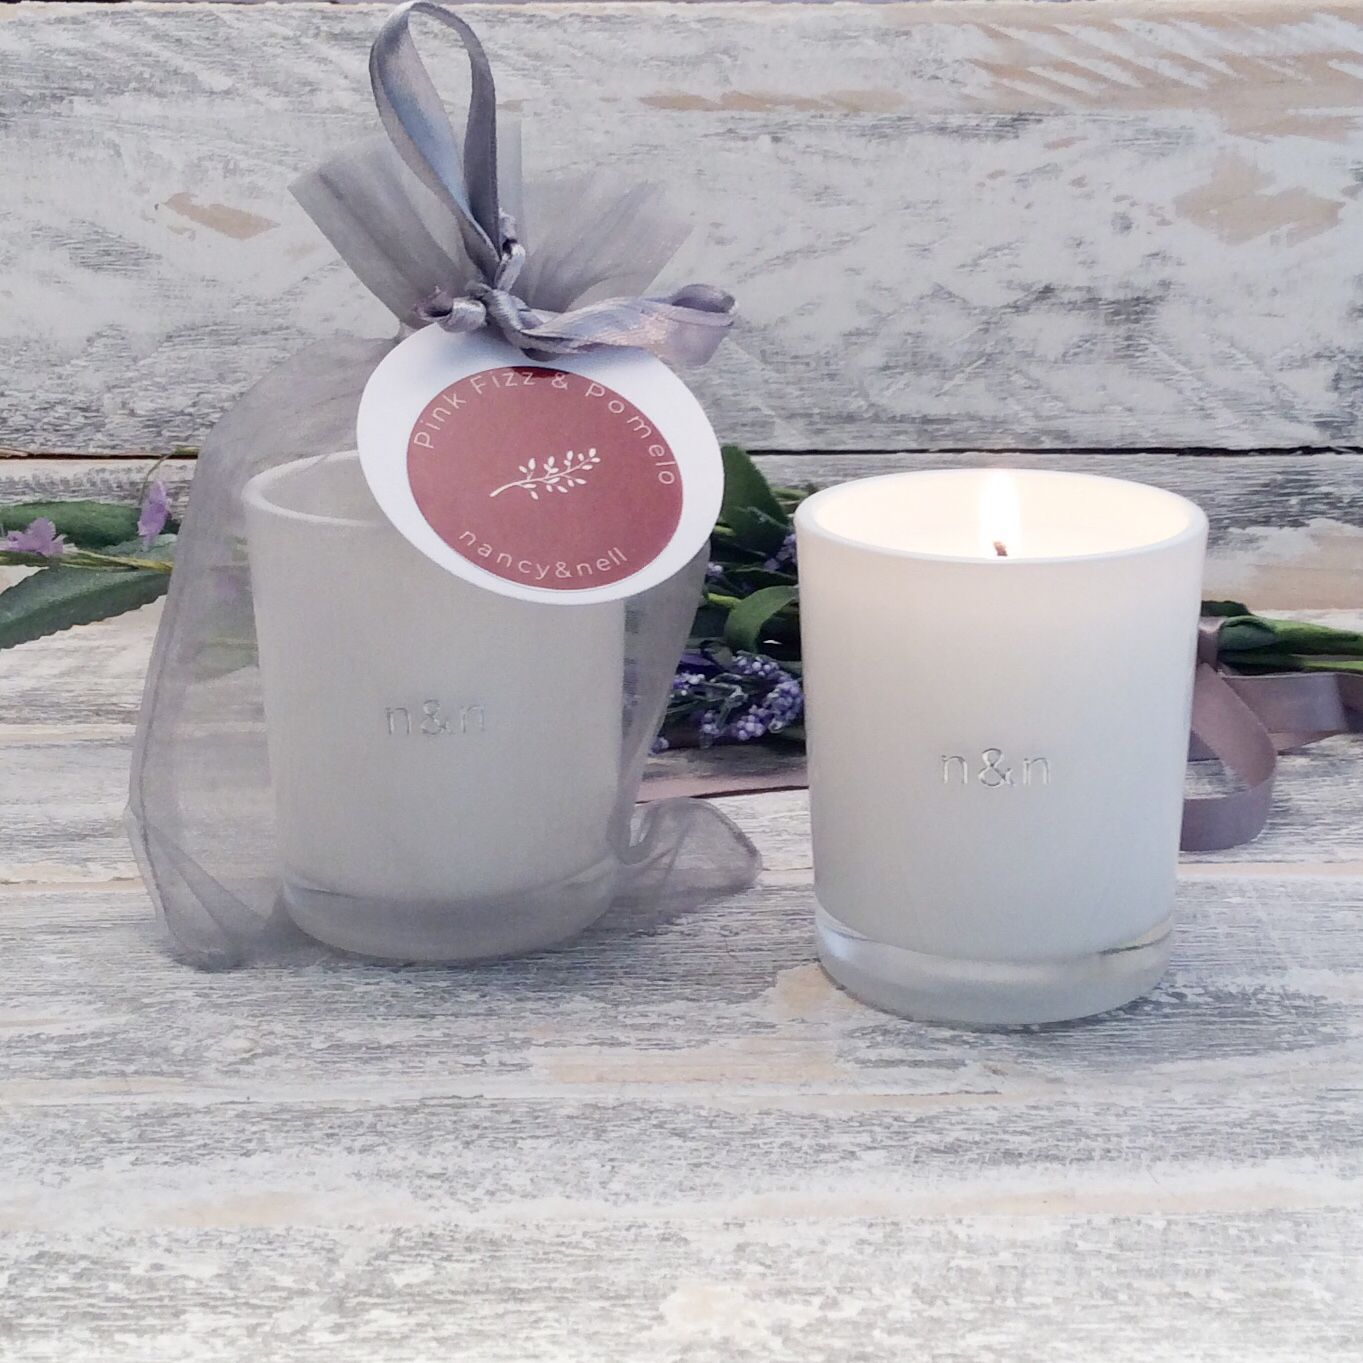 A pink fizz pomelo votive candle presented in a